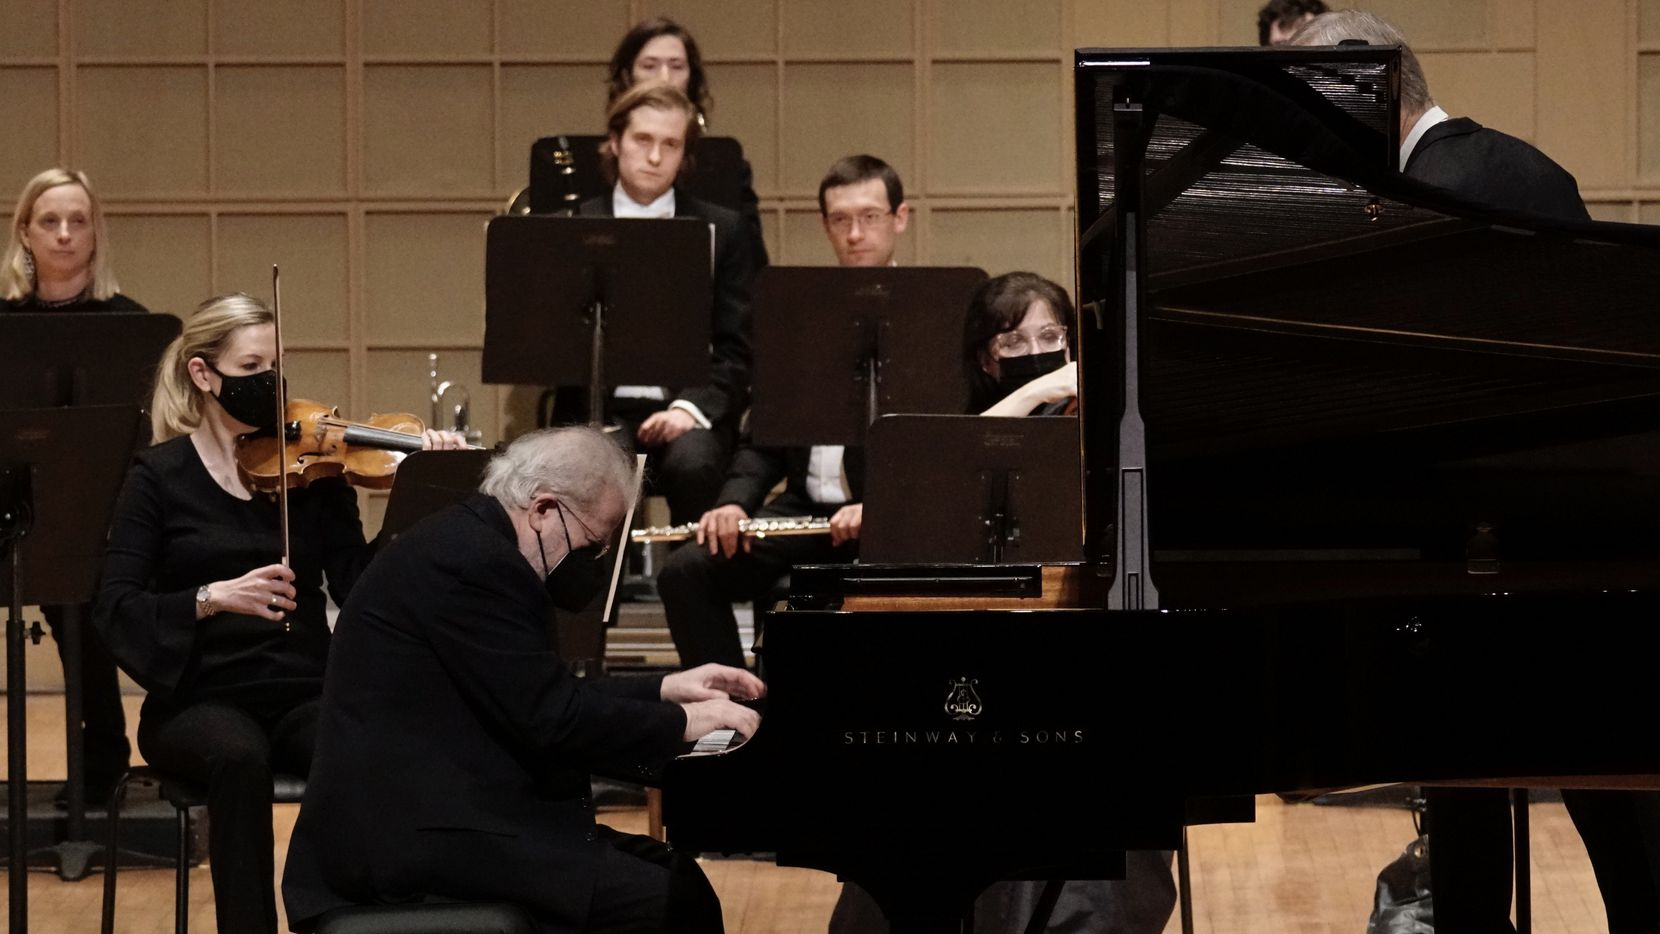 Pianist Emanuel Ax performs with the Dallas Symphony Orchestra at the Meyerson Symphony Center in Dallas on April 15.